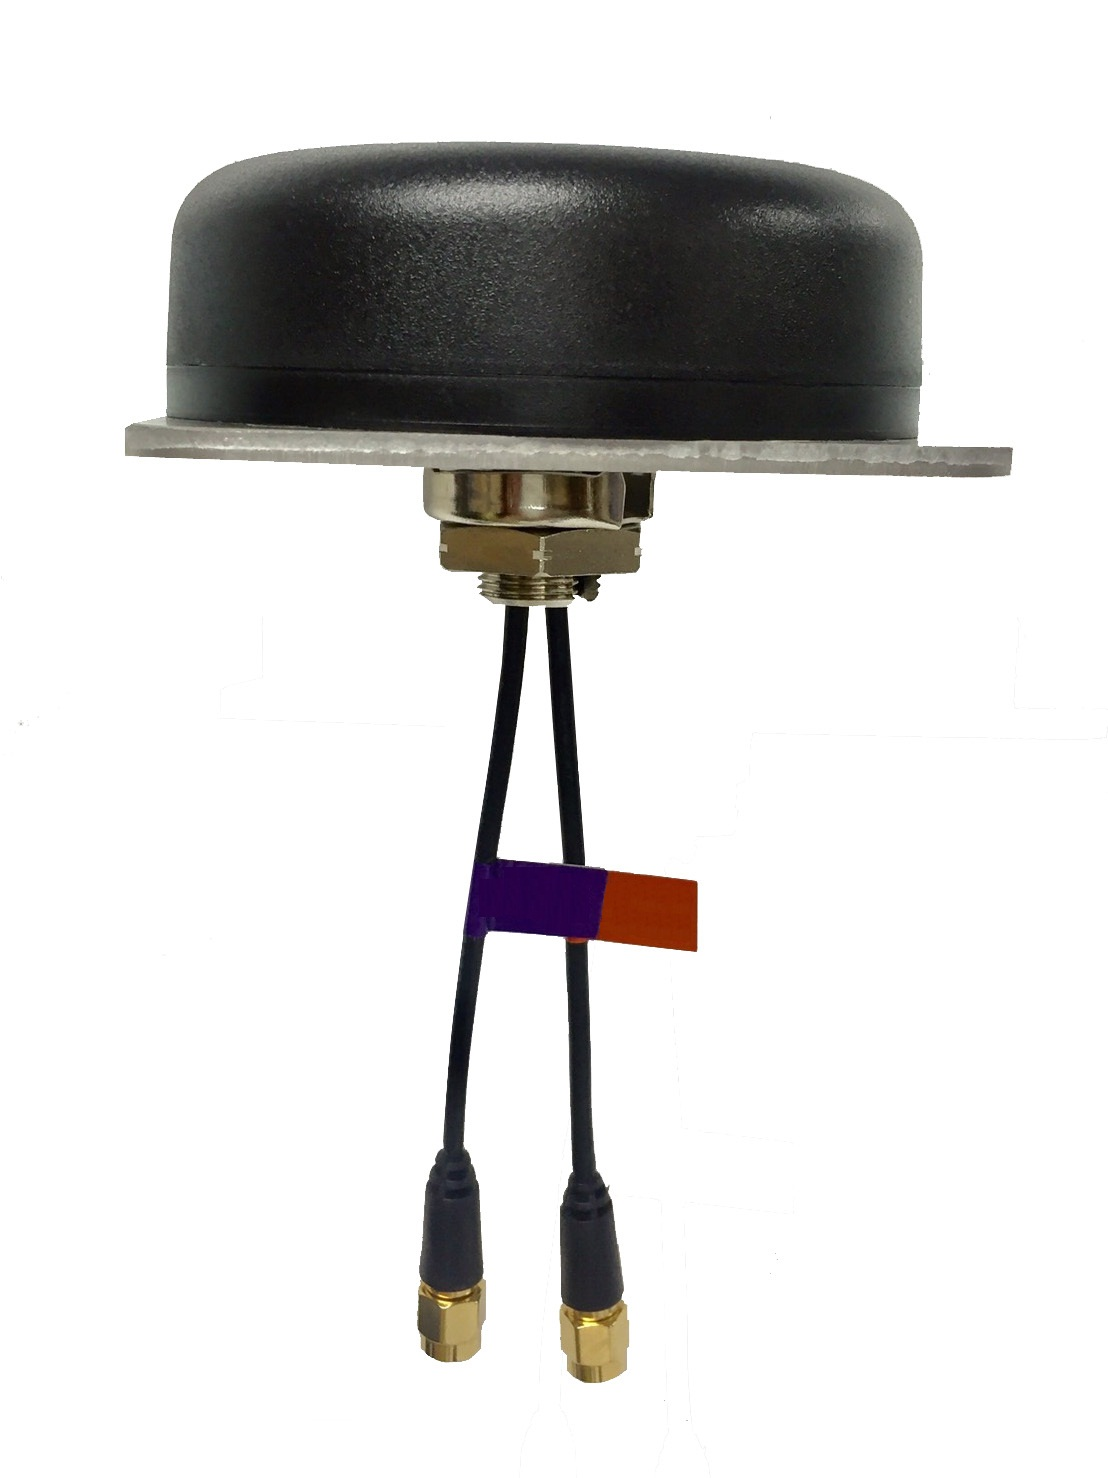 Automobile Combined Antenna for Body Parts made by Chinmore Industry Co., LTD. 竣茂工業有限公司 - MatchSupplier.com